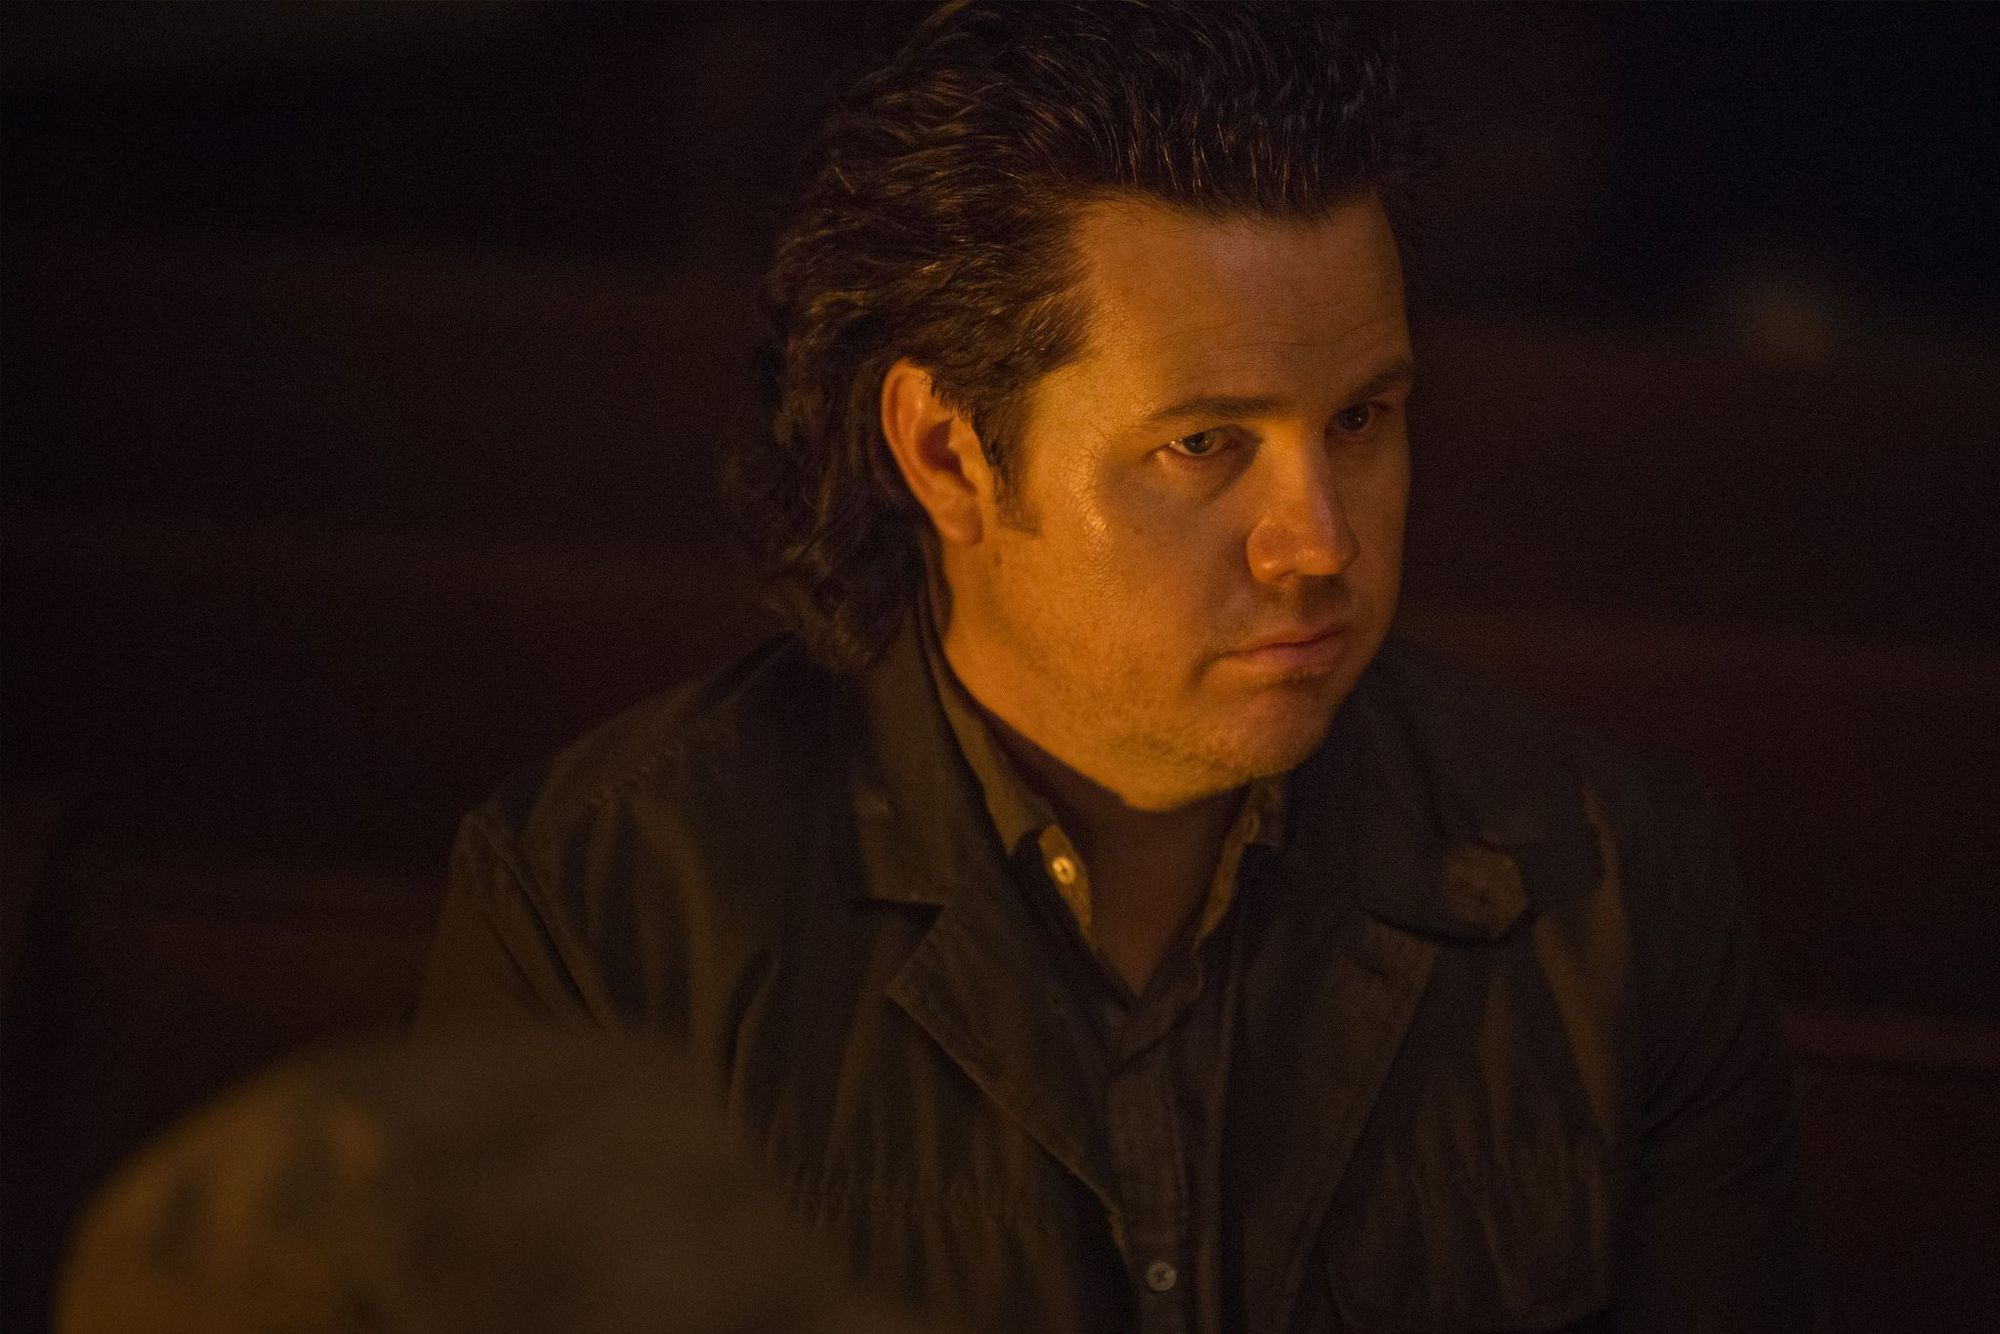 Eugene-The-Walking-Dead-Strangers-002